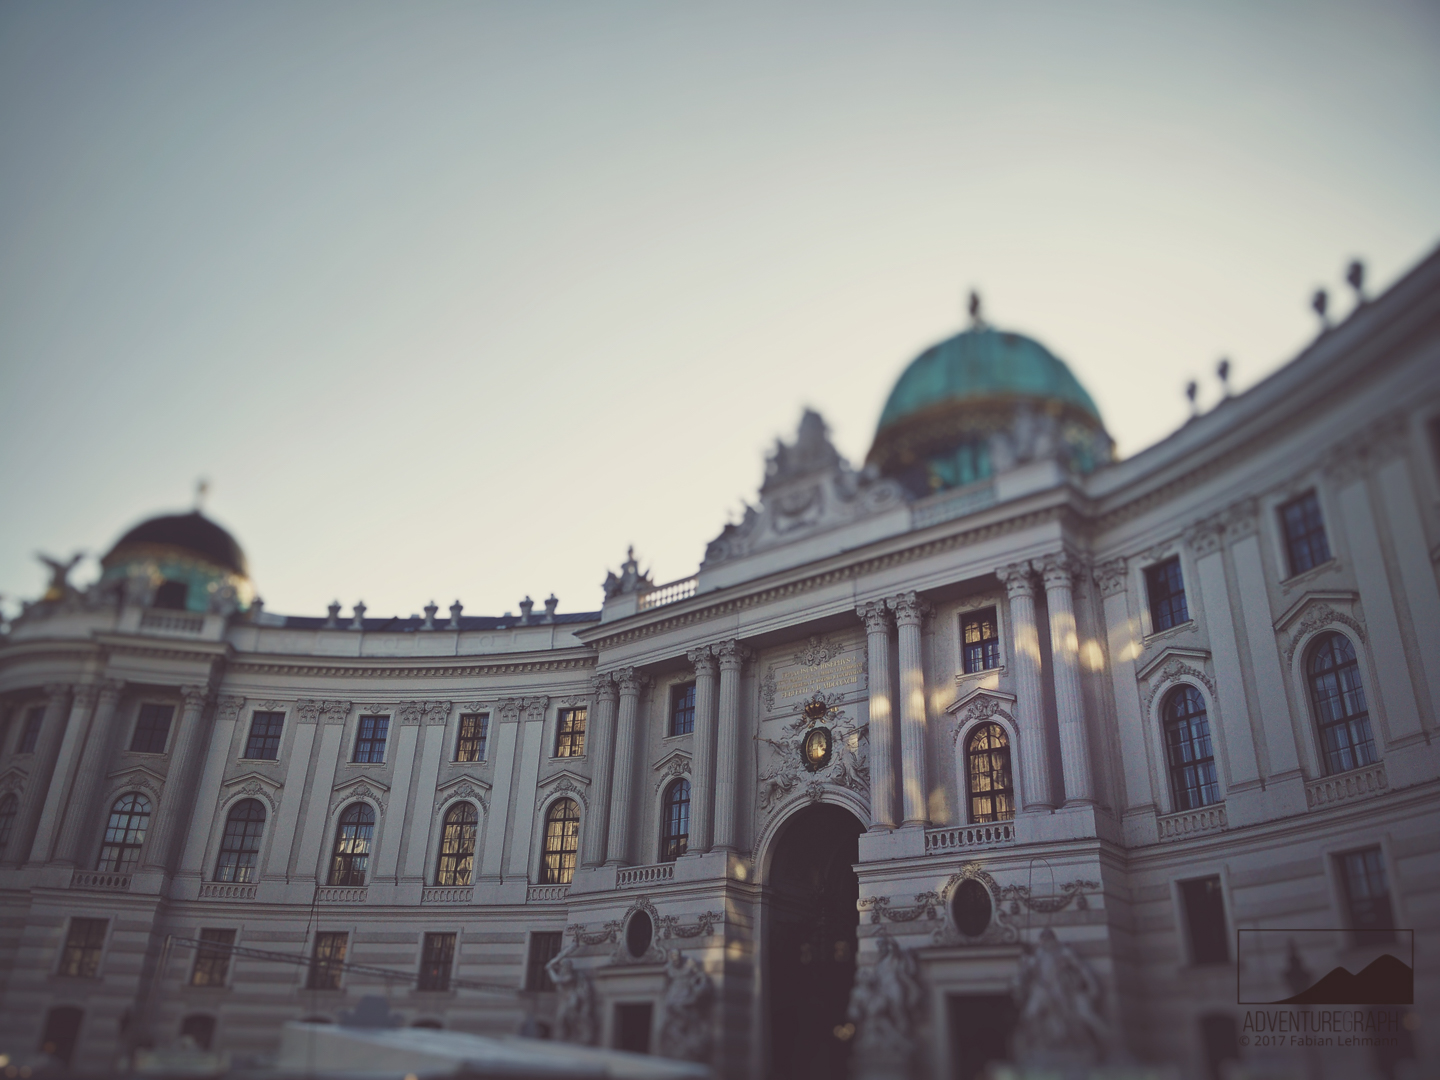 Creative advertisement for tourism: The city building Hofburg in Vienna.